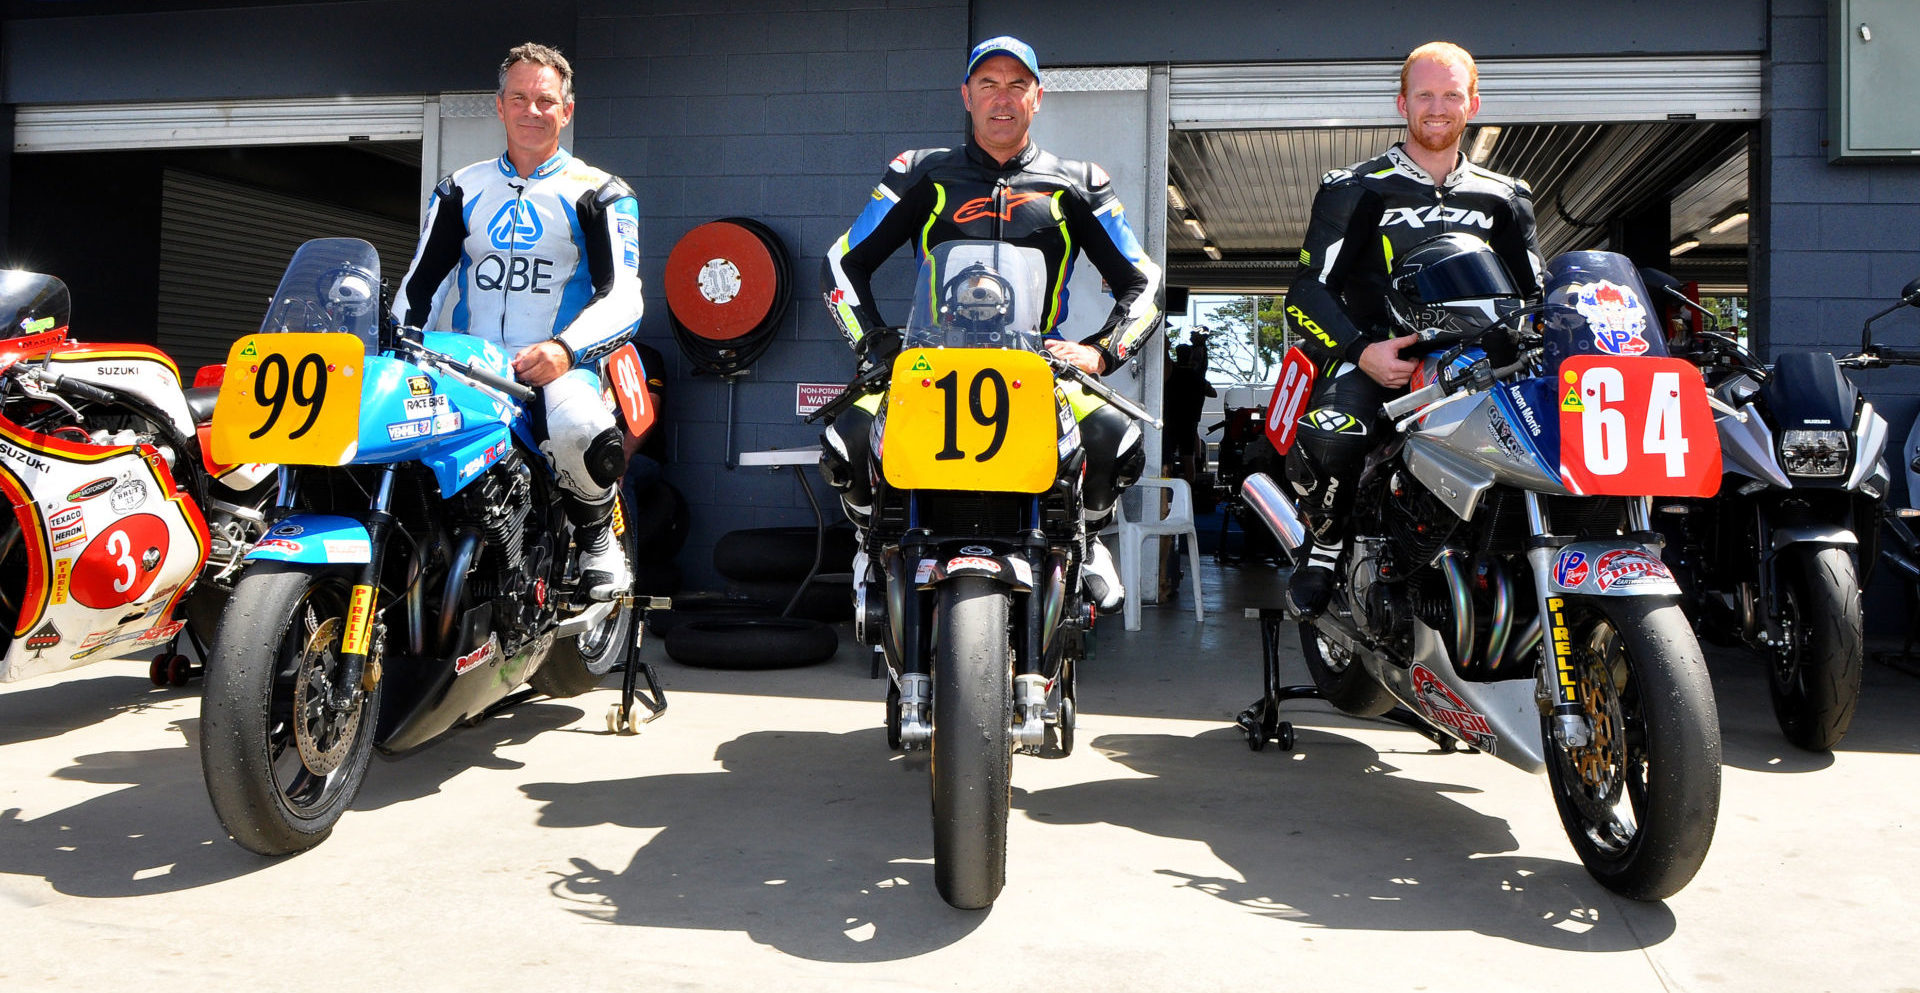 Team Australia's (from left) Steve Martin, Shawn Giles, and Aaron Morris, as seen in January 2019. Photo by Russell Colvin, courtesy of Phillip Island Grand Prix Circuit.